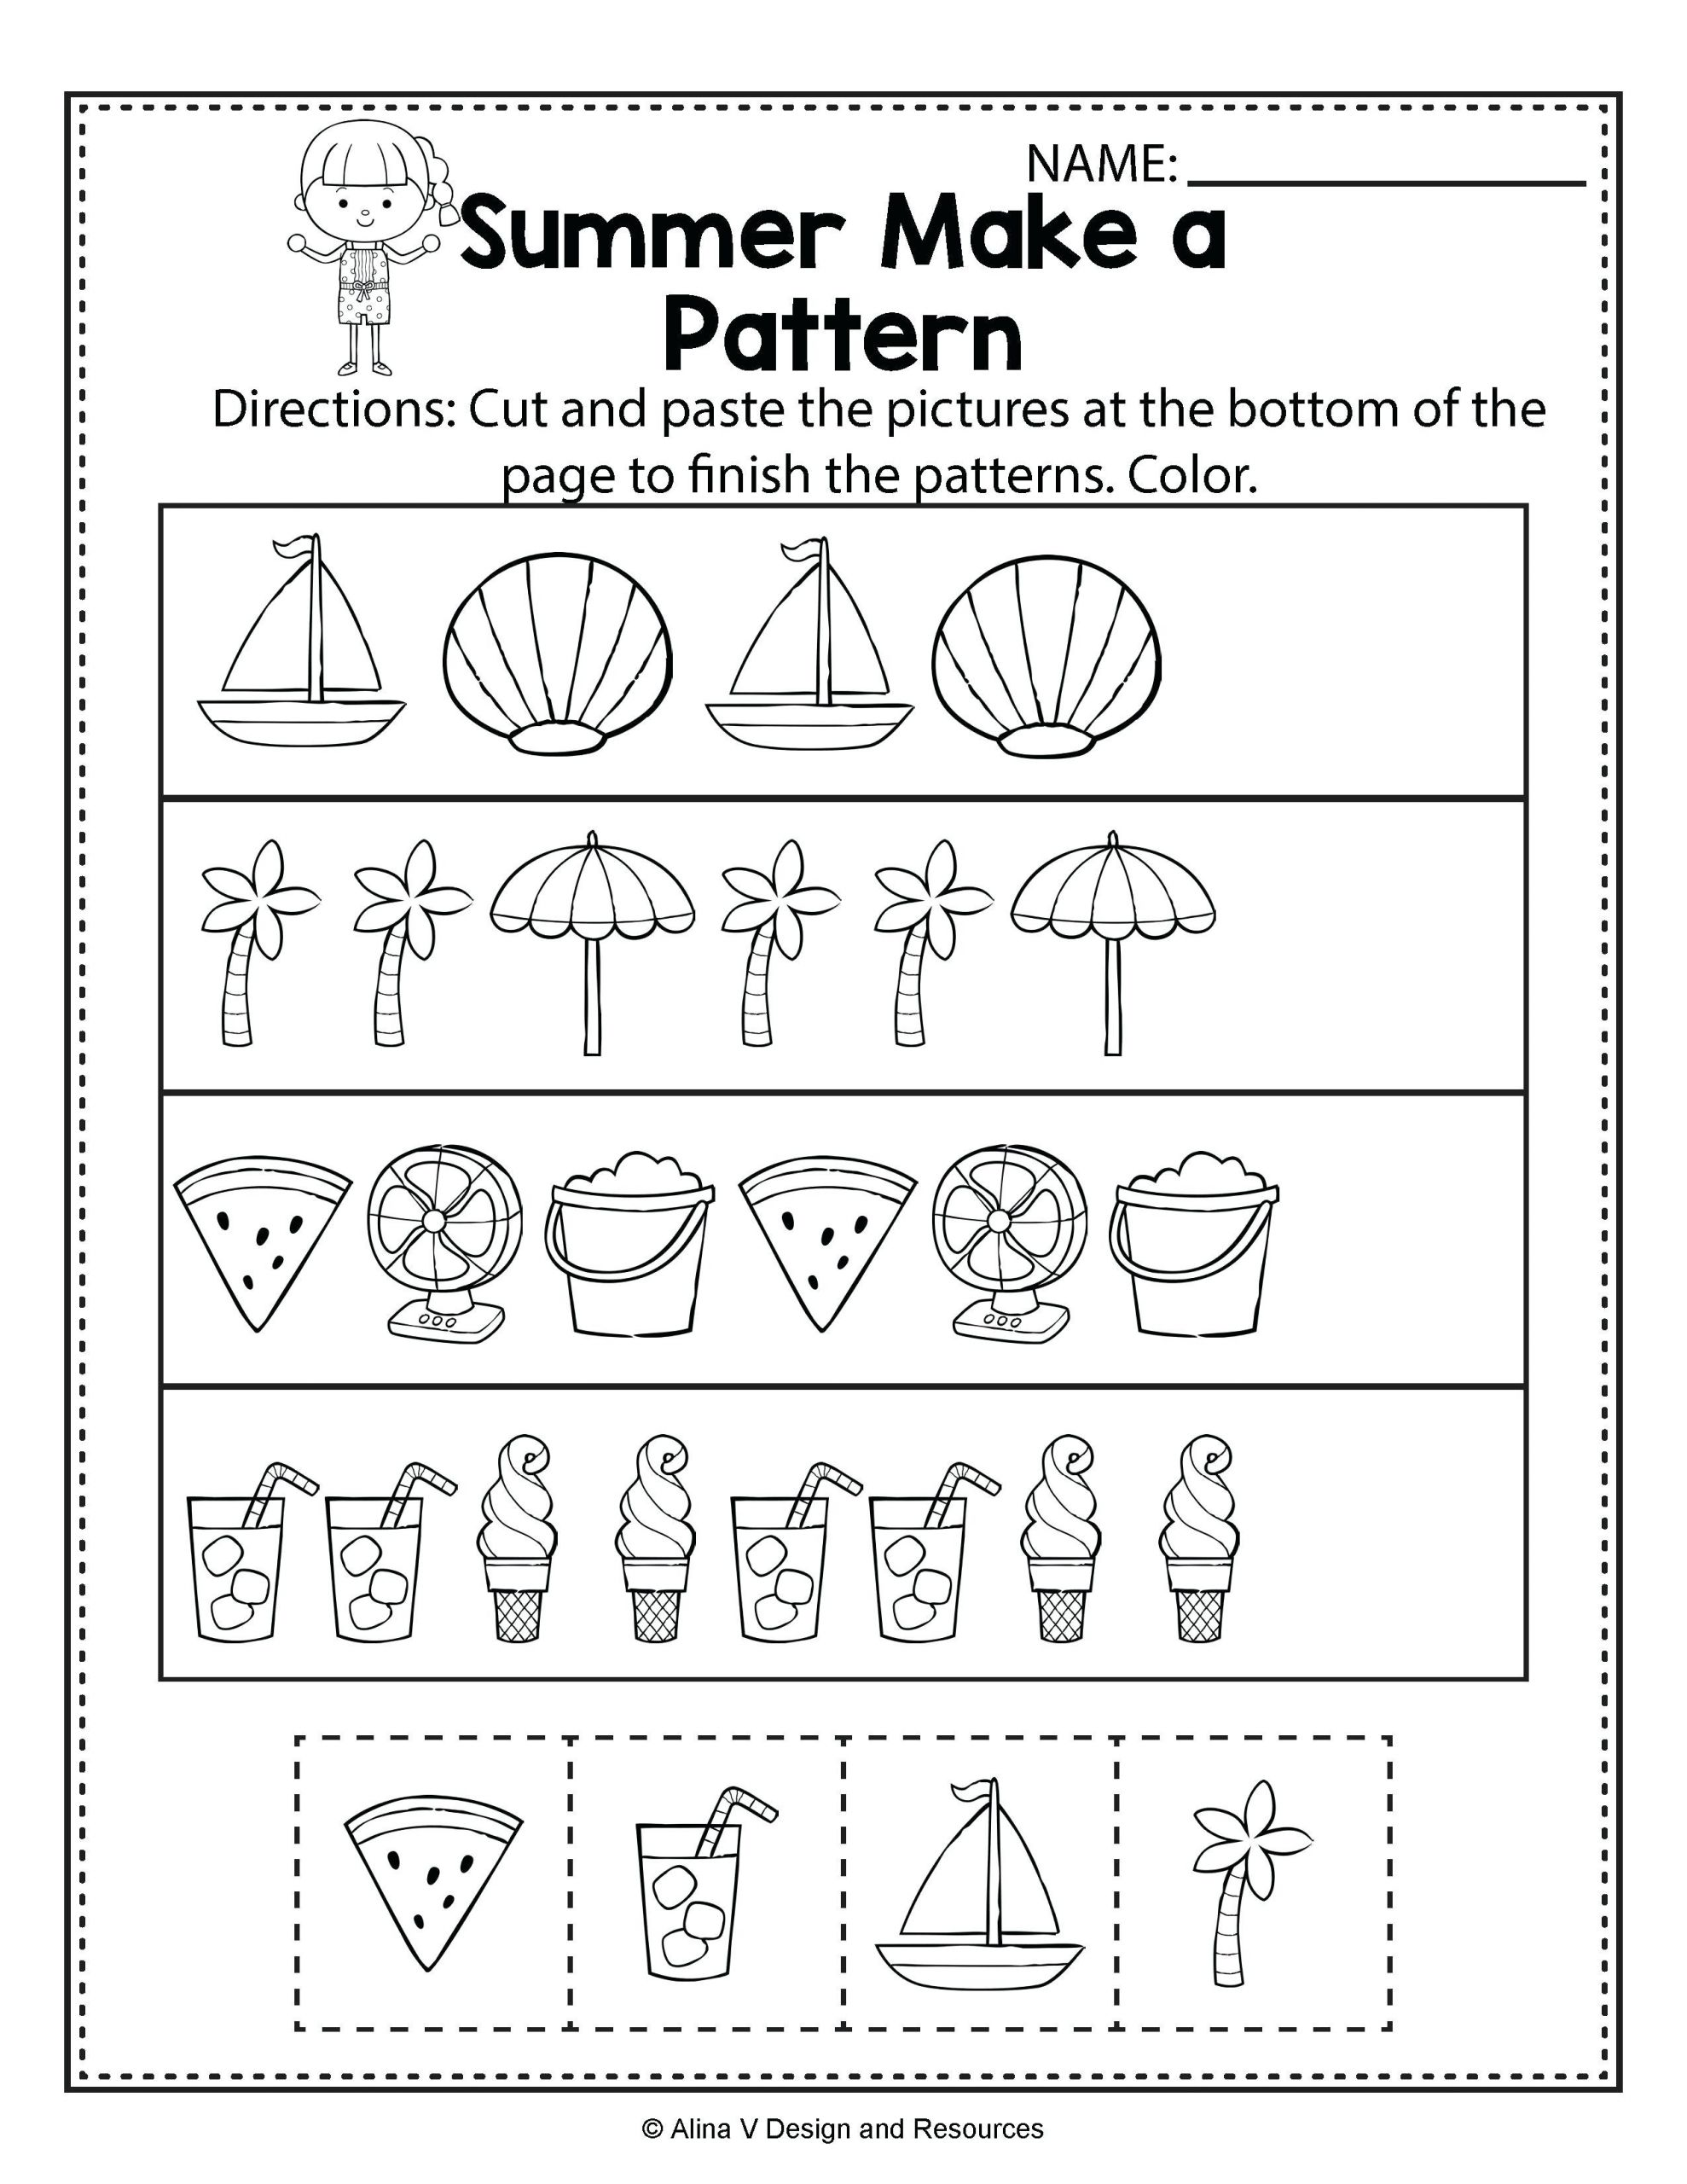 hight resolution of 4 Free Math Worksheets Third Grade 3 Subtraction Subtract 1 Digit From 2  Digit Missing Number - apocalomegaproductions.com